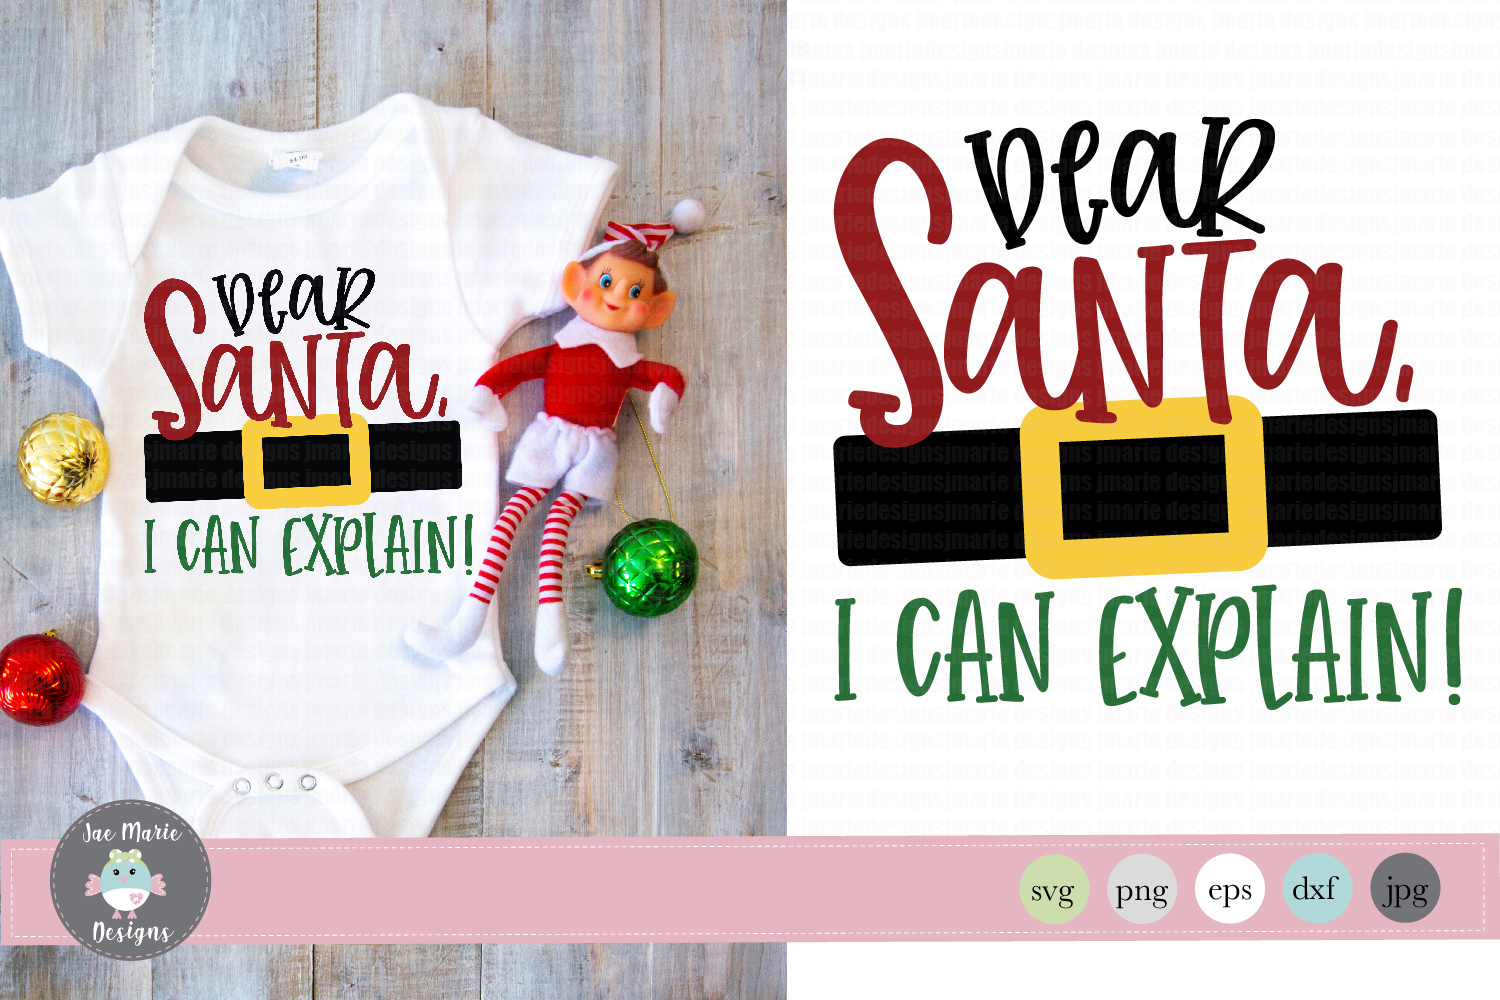 Download Free Dear Santa I Can Explain Graphic By Thejaemarie Creative Fabrica for Cricut Explore, Silhouette and other cutting machines.